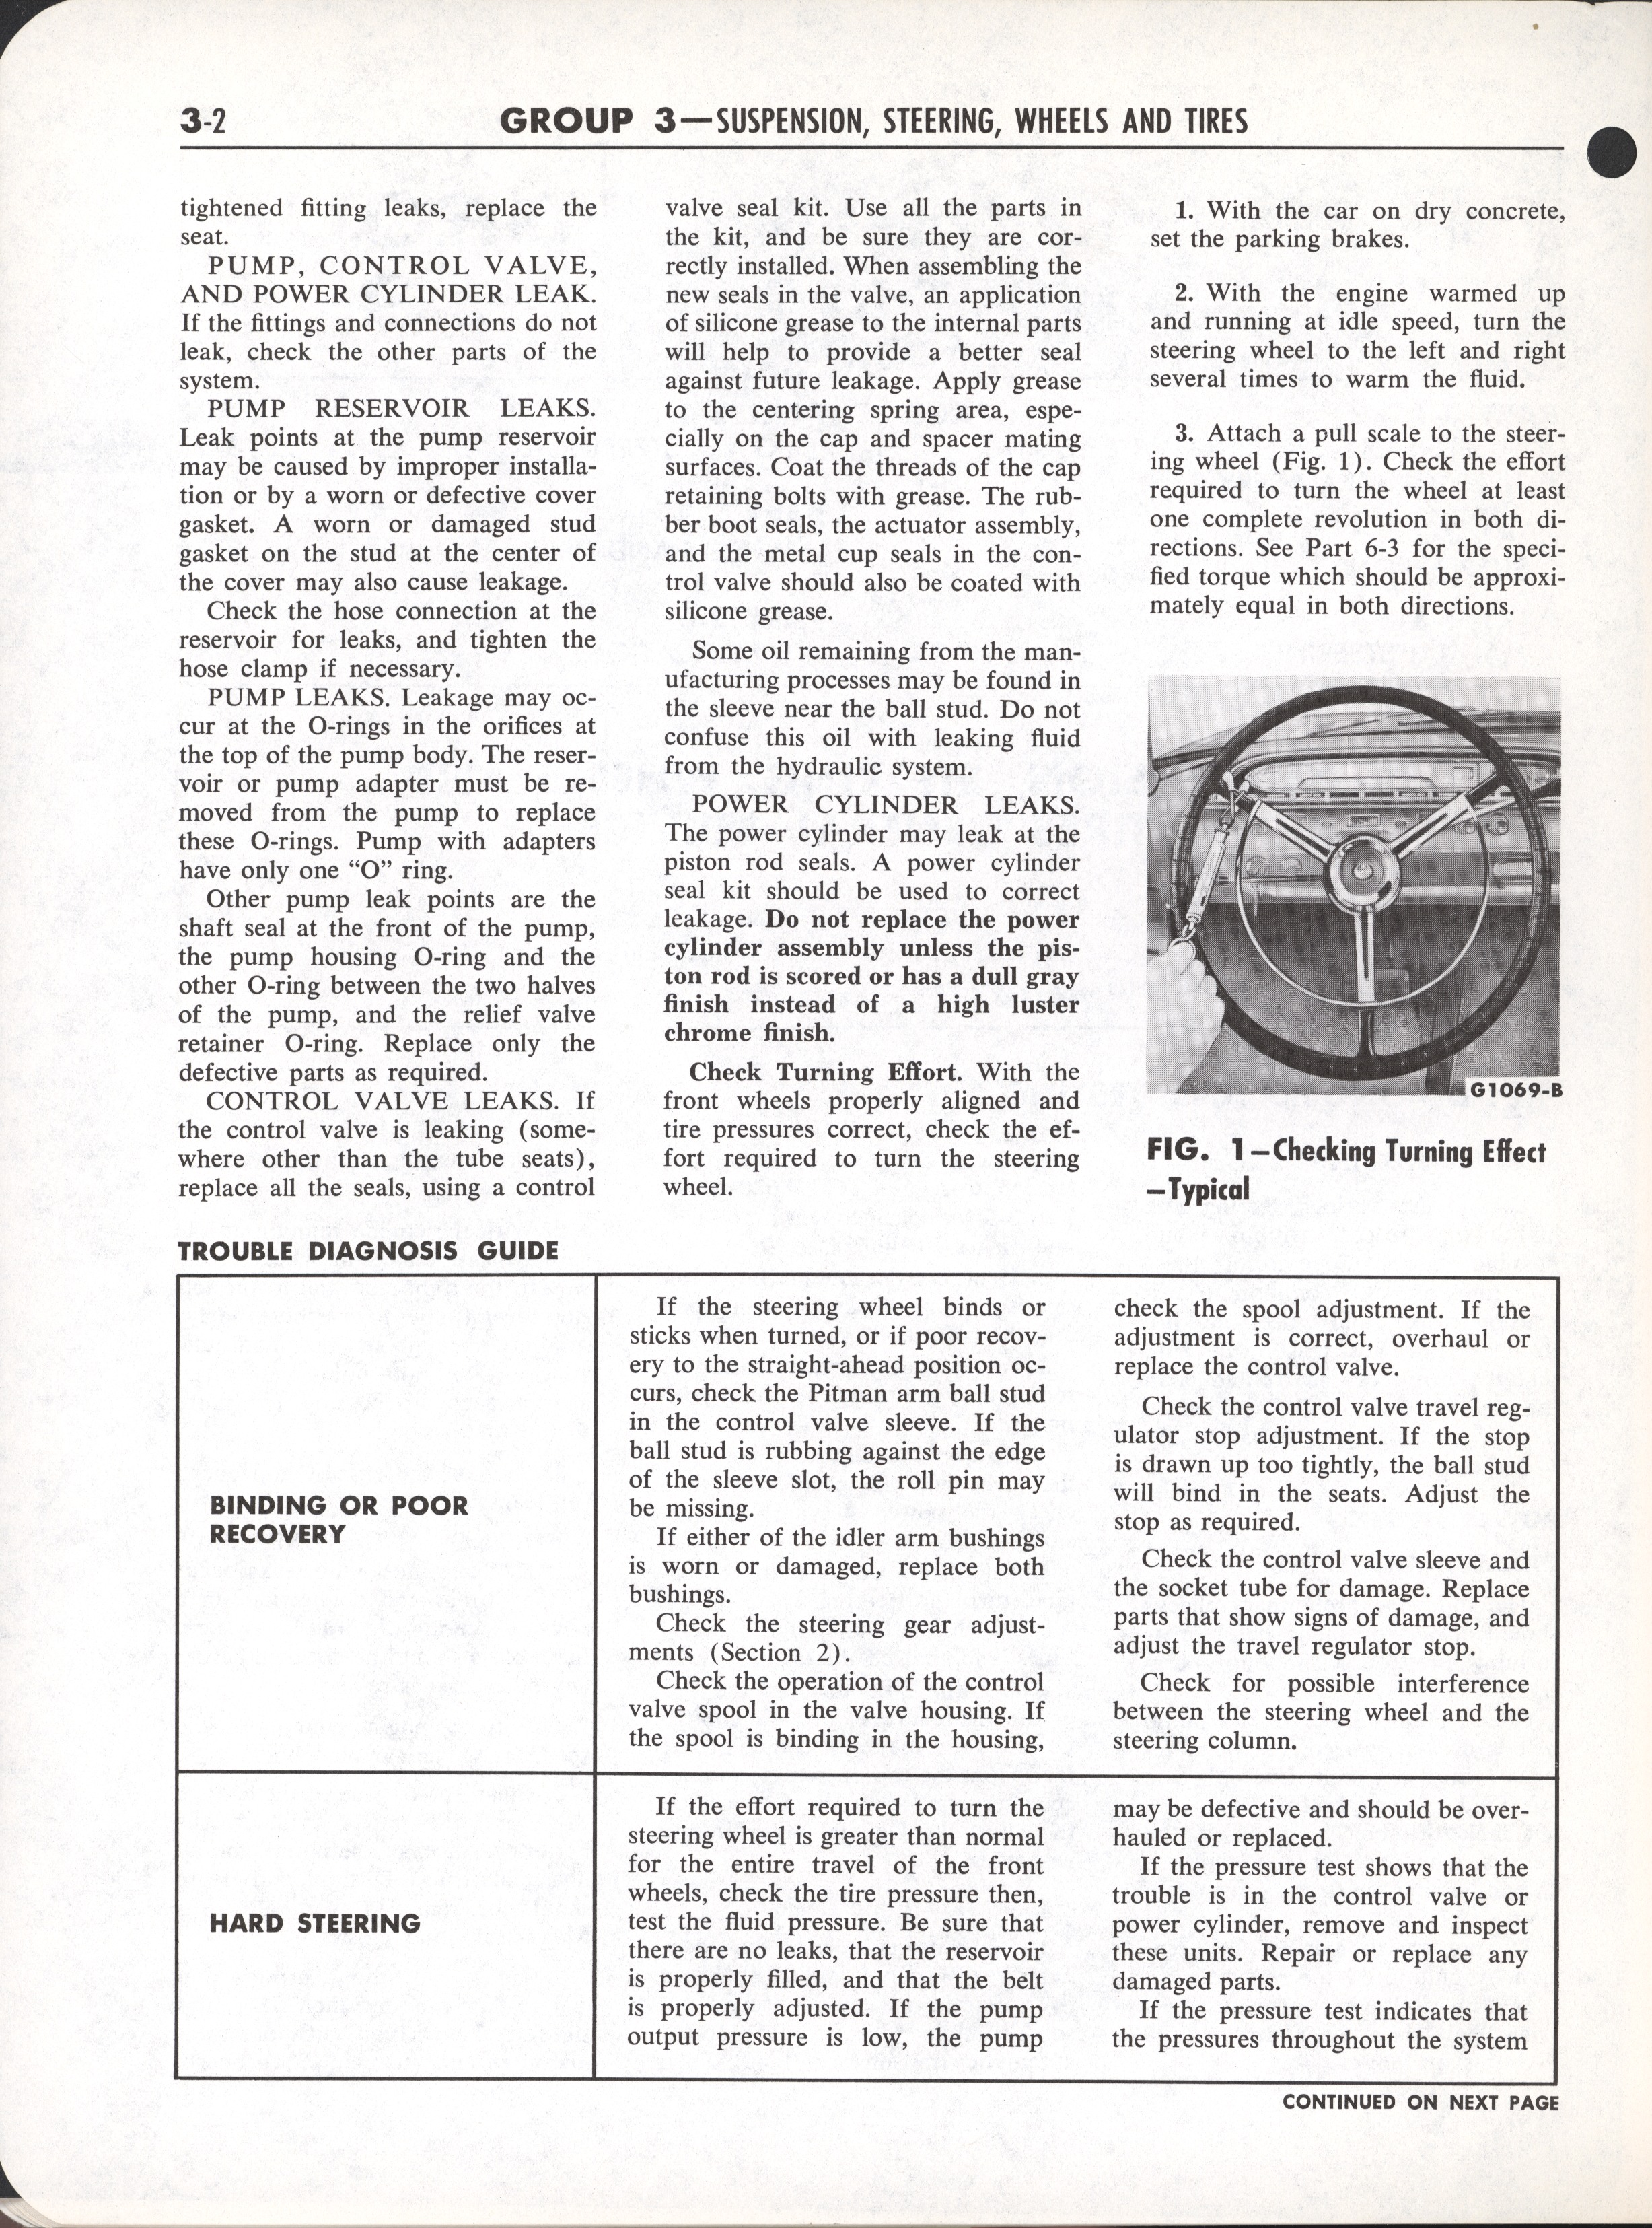 Falcon Shop Manual, 1964: Page 3-002